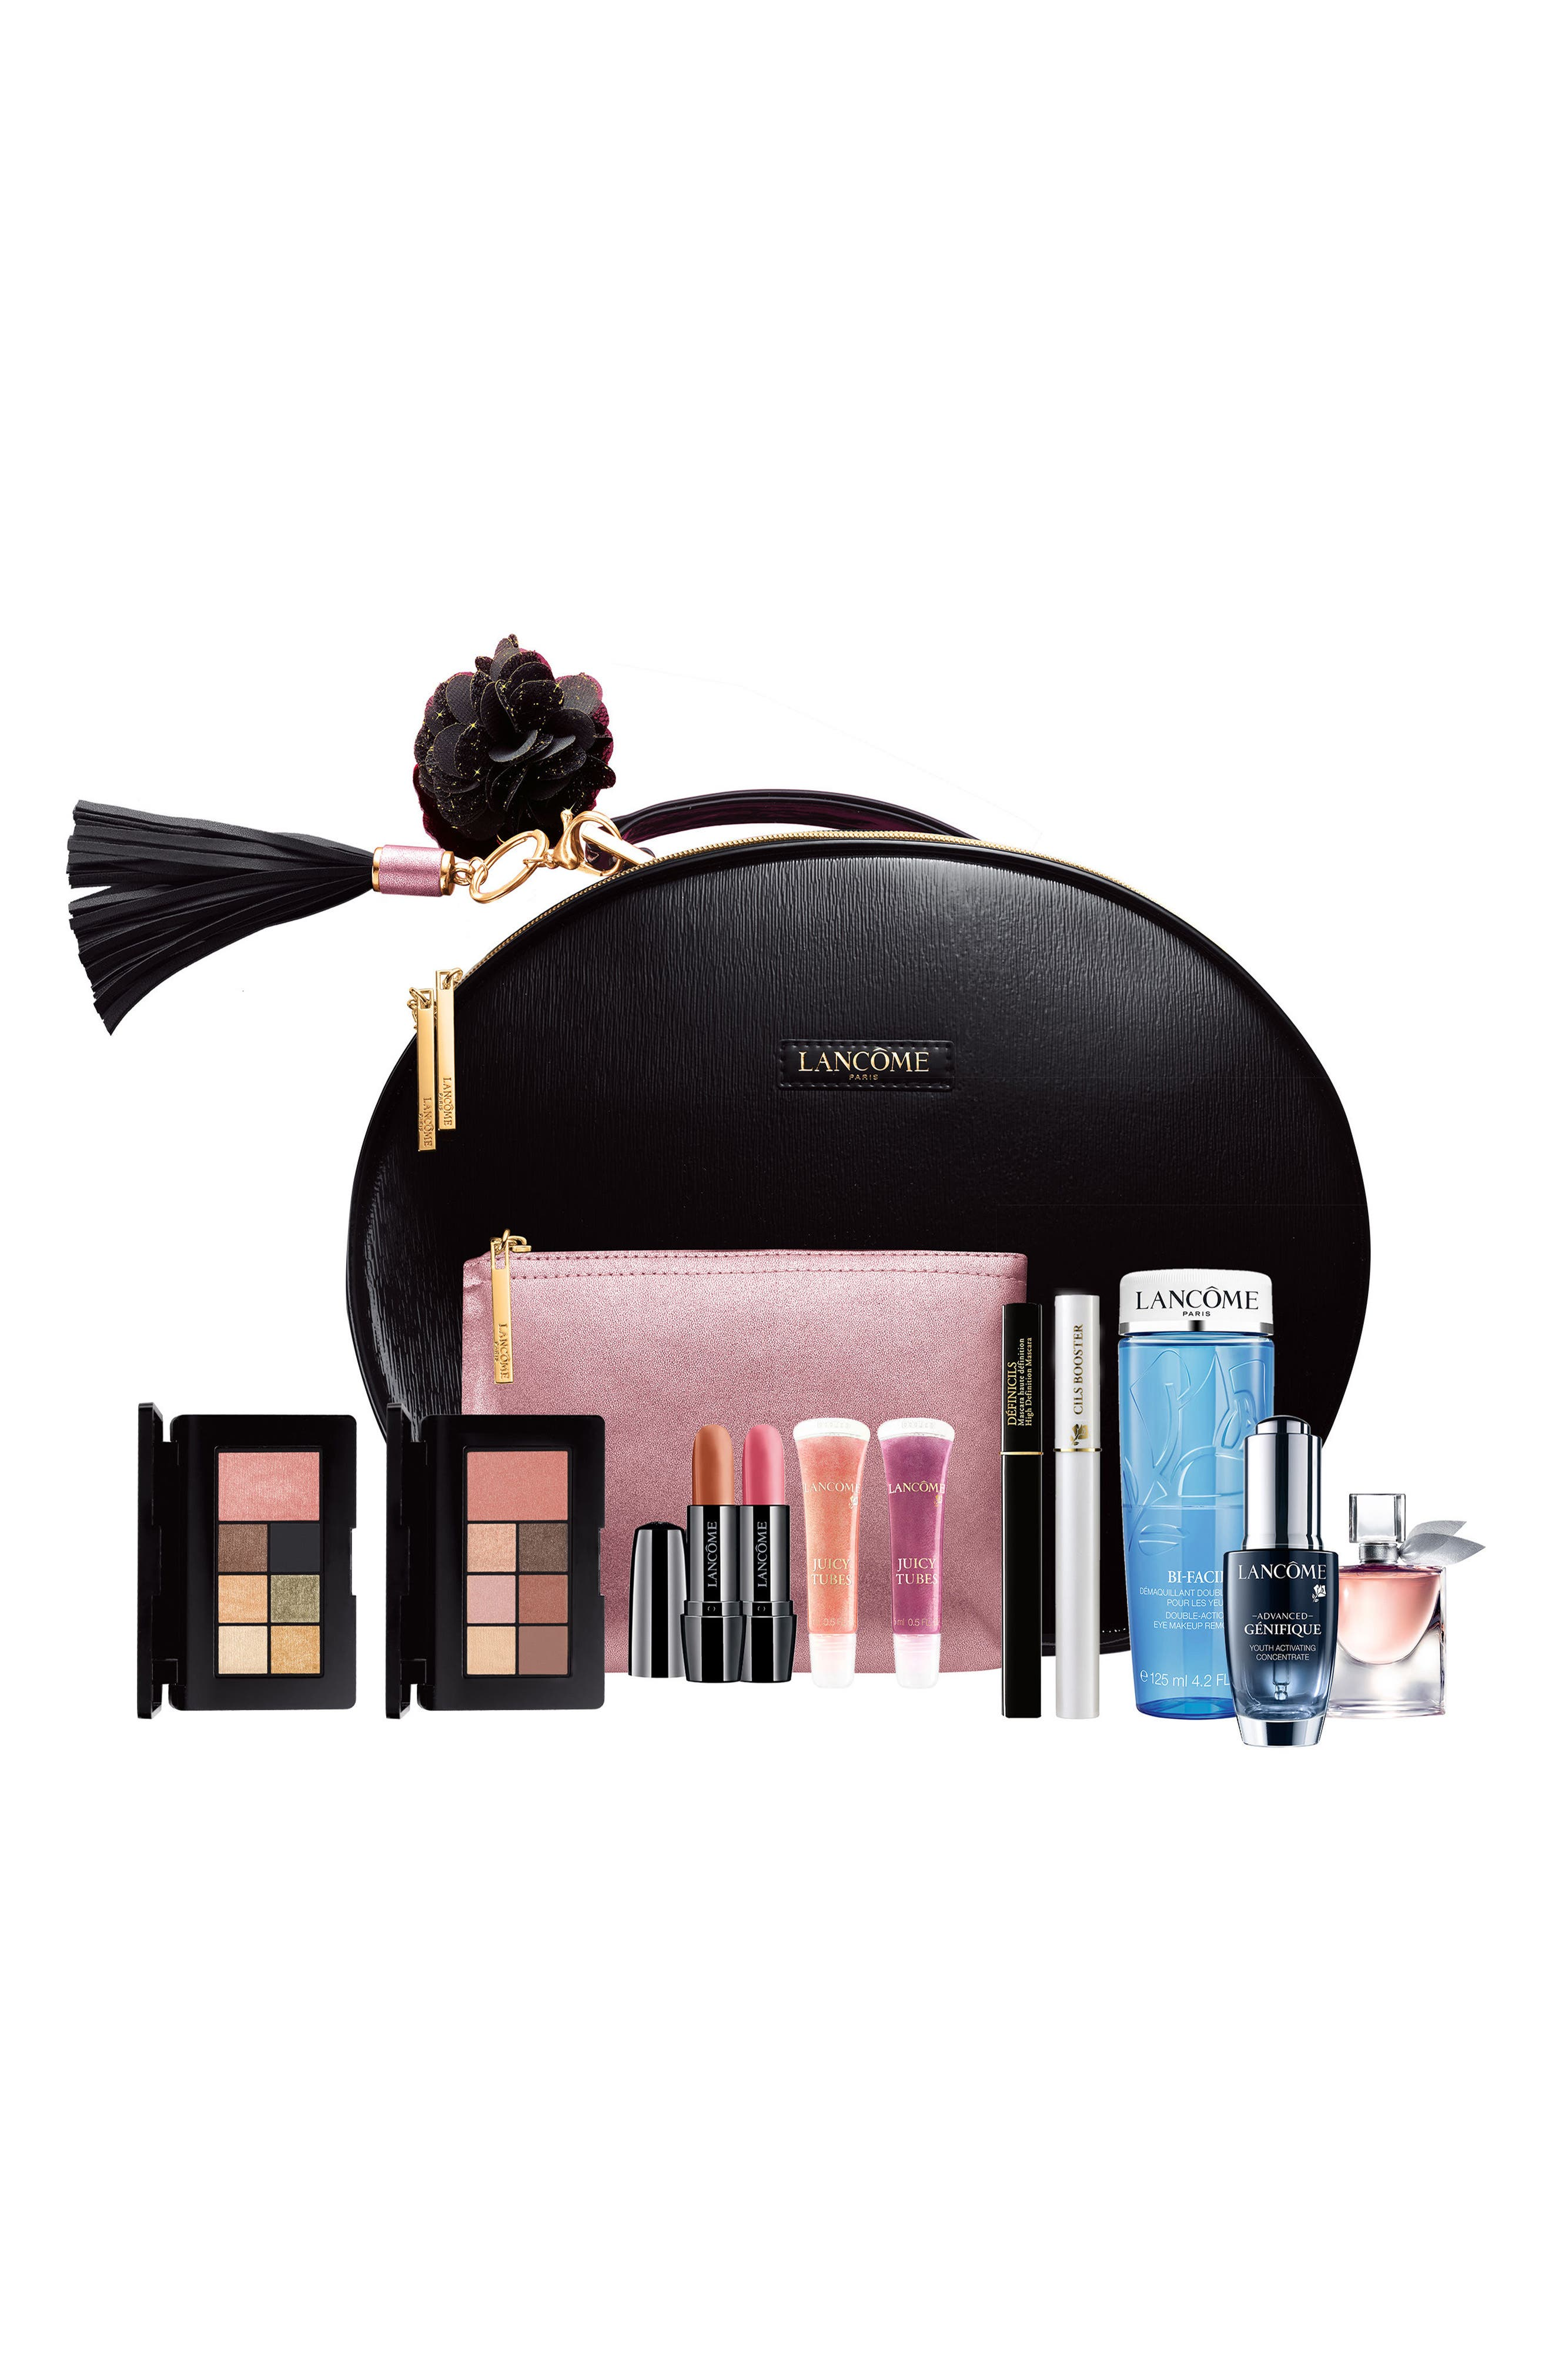 Lancôme Beauty Box ($350 Value)